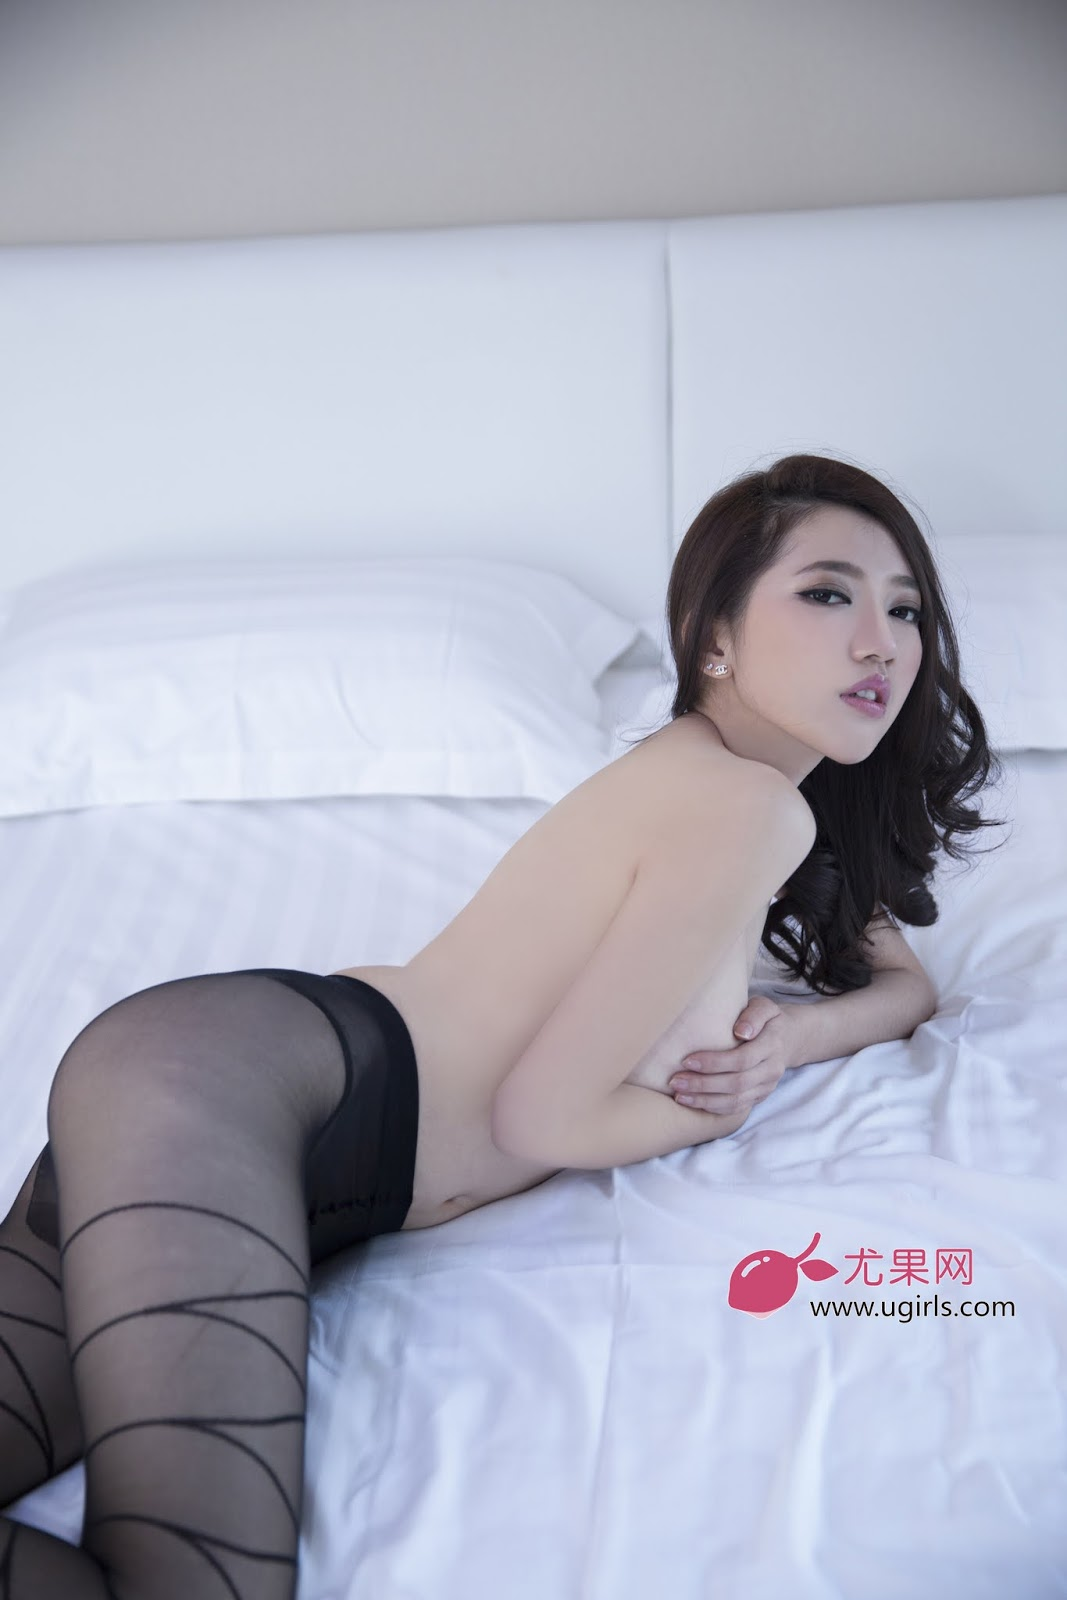 A14A5503 - Hot Model UGIRLS NO.8